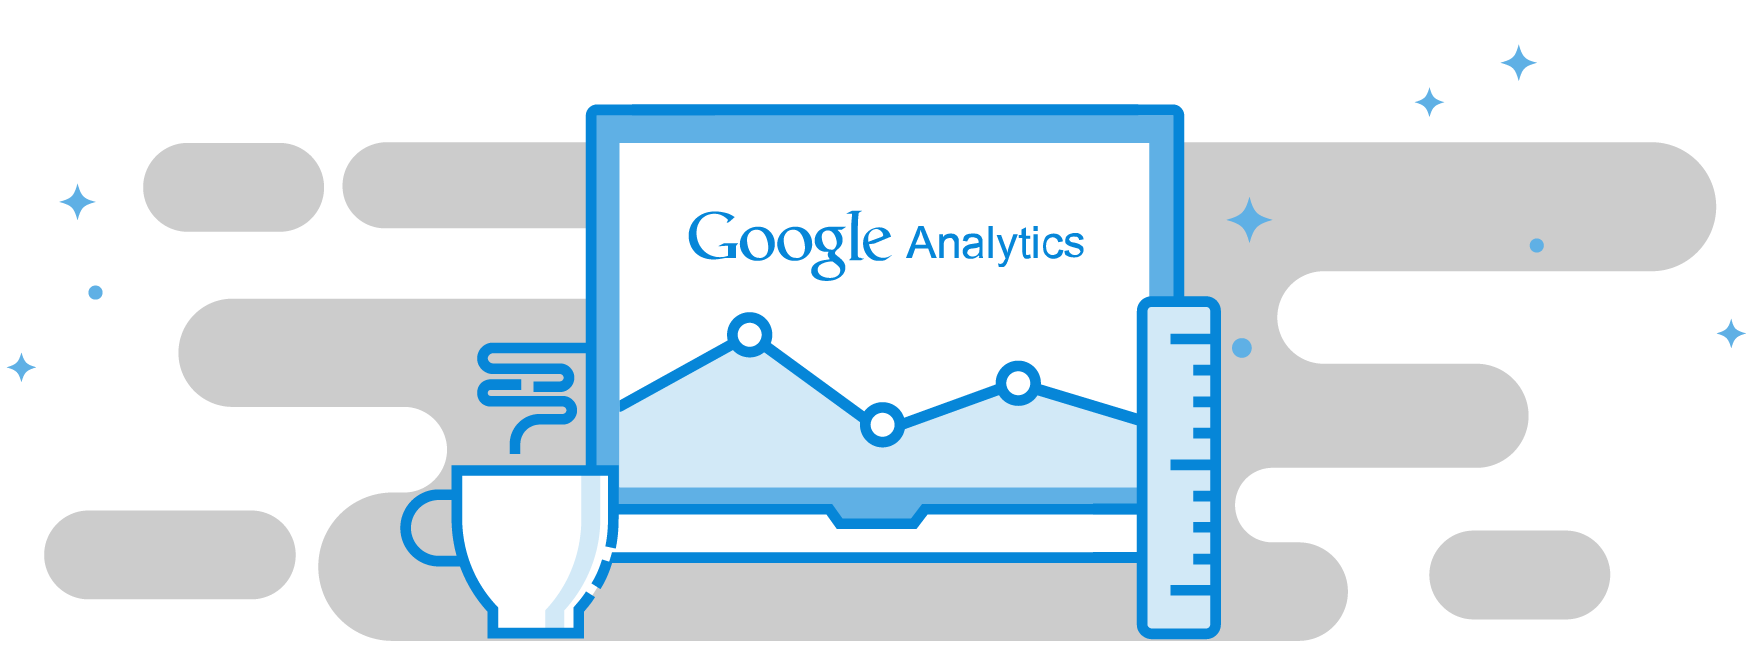 How to make Google Analytics work in a Single Page Application (SPA)